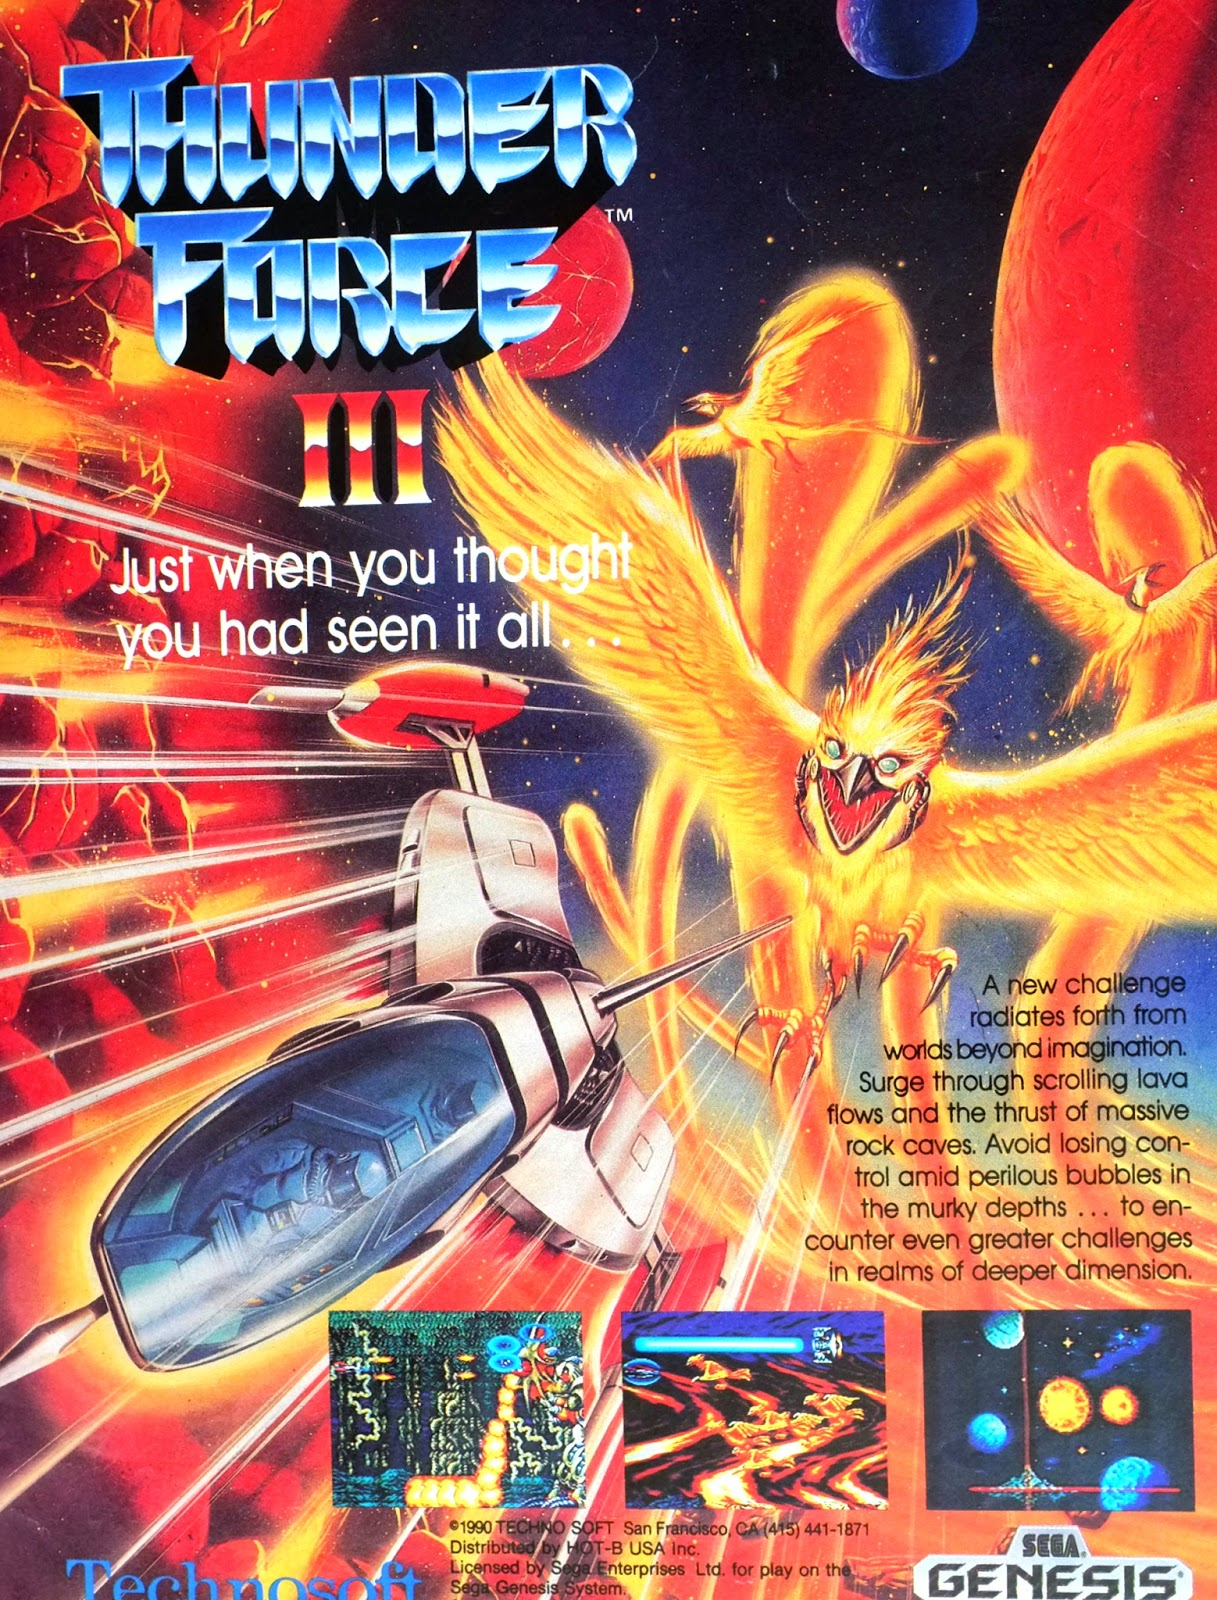 Thunder Force III for Genesis advertisement